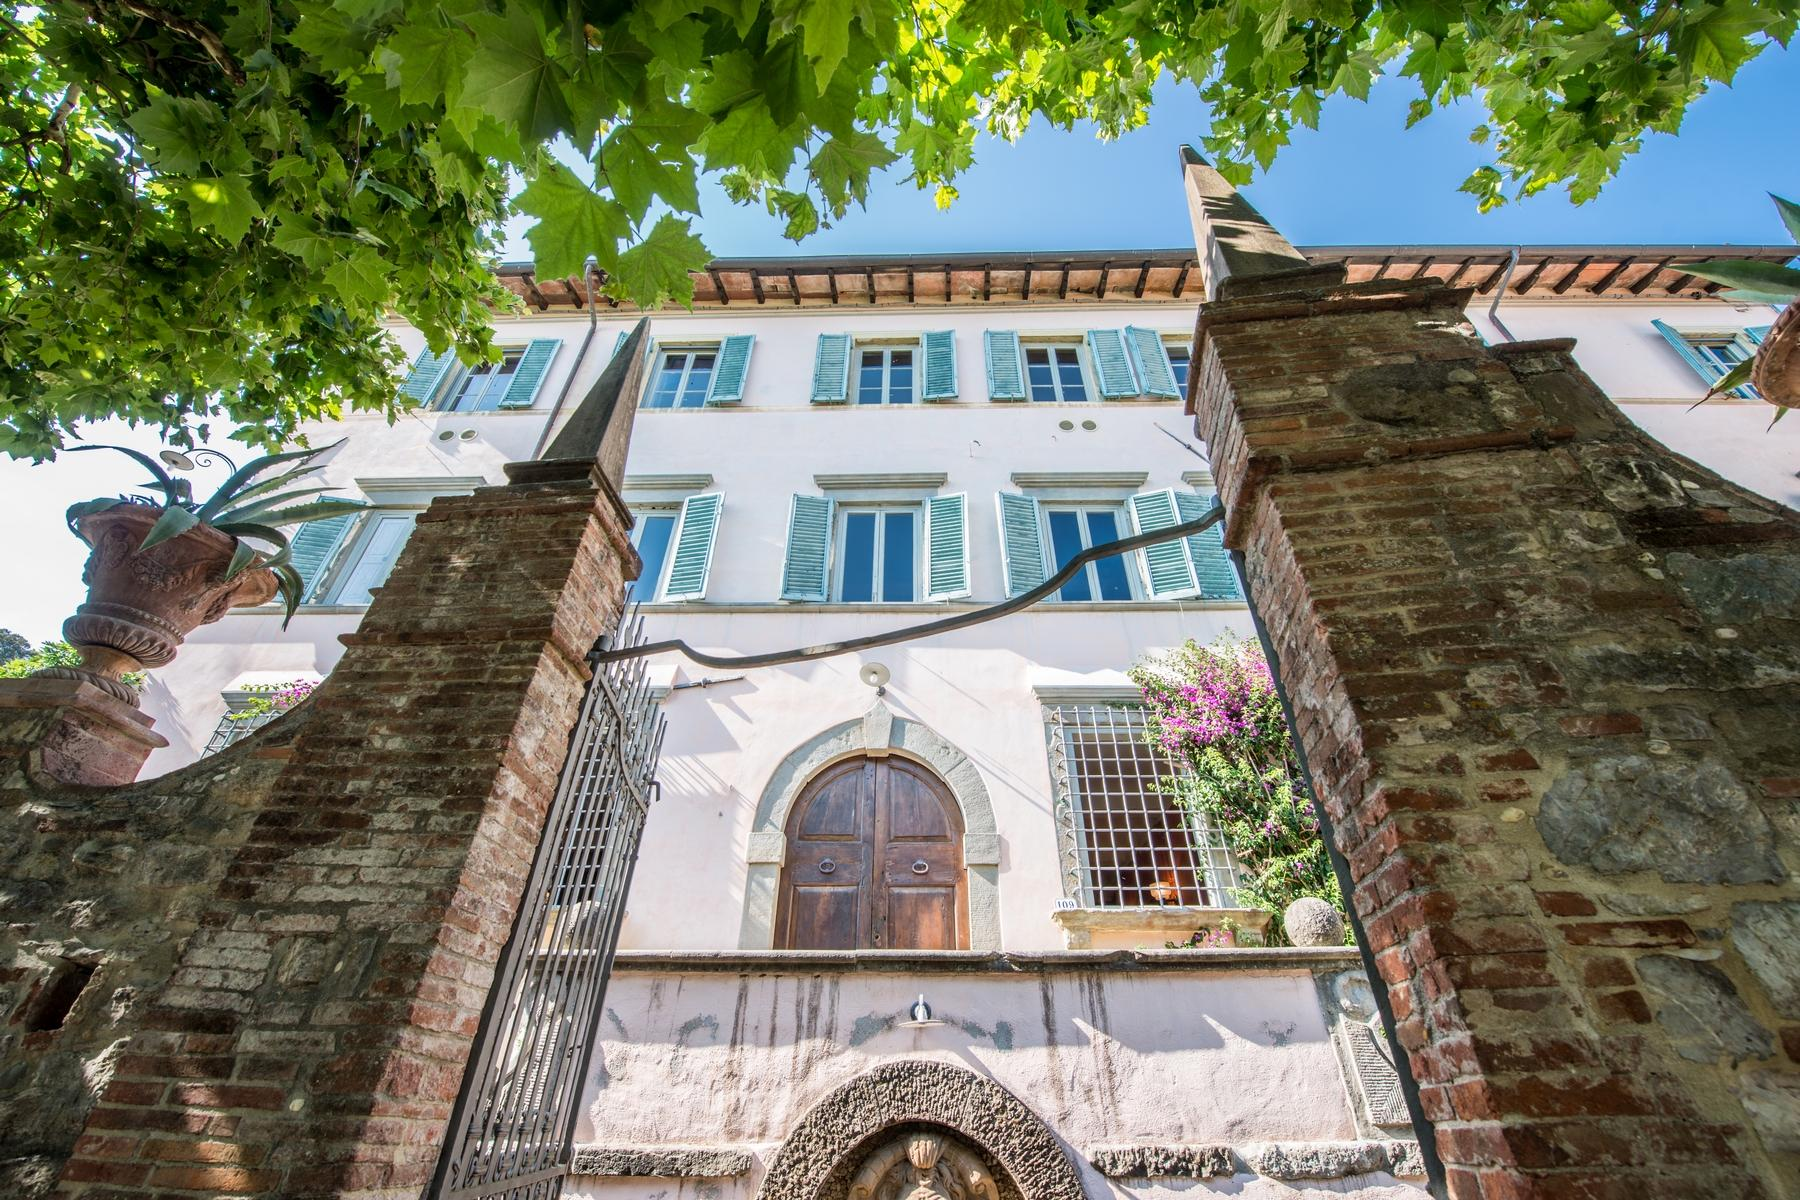 Beautiful 17th century villa near Lucca - 2